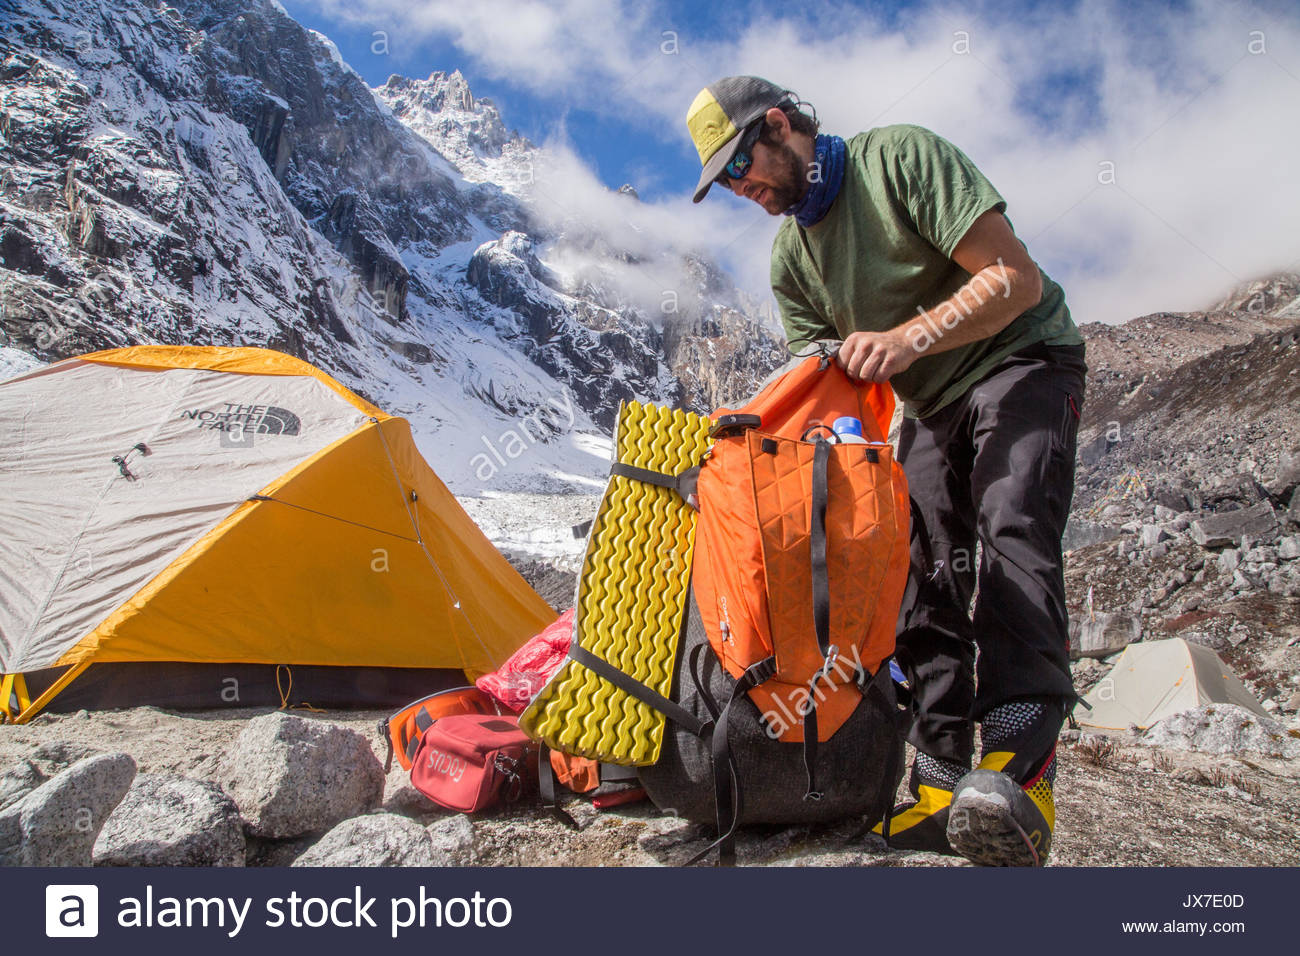 An expedition member begins to pack equipment into his backpack. - Stock Image